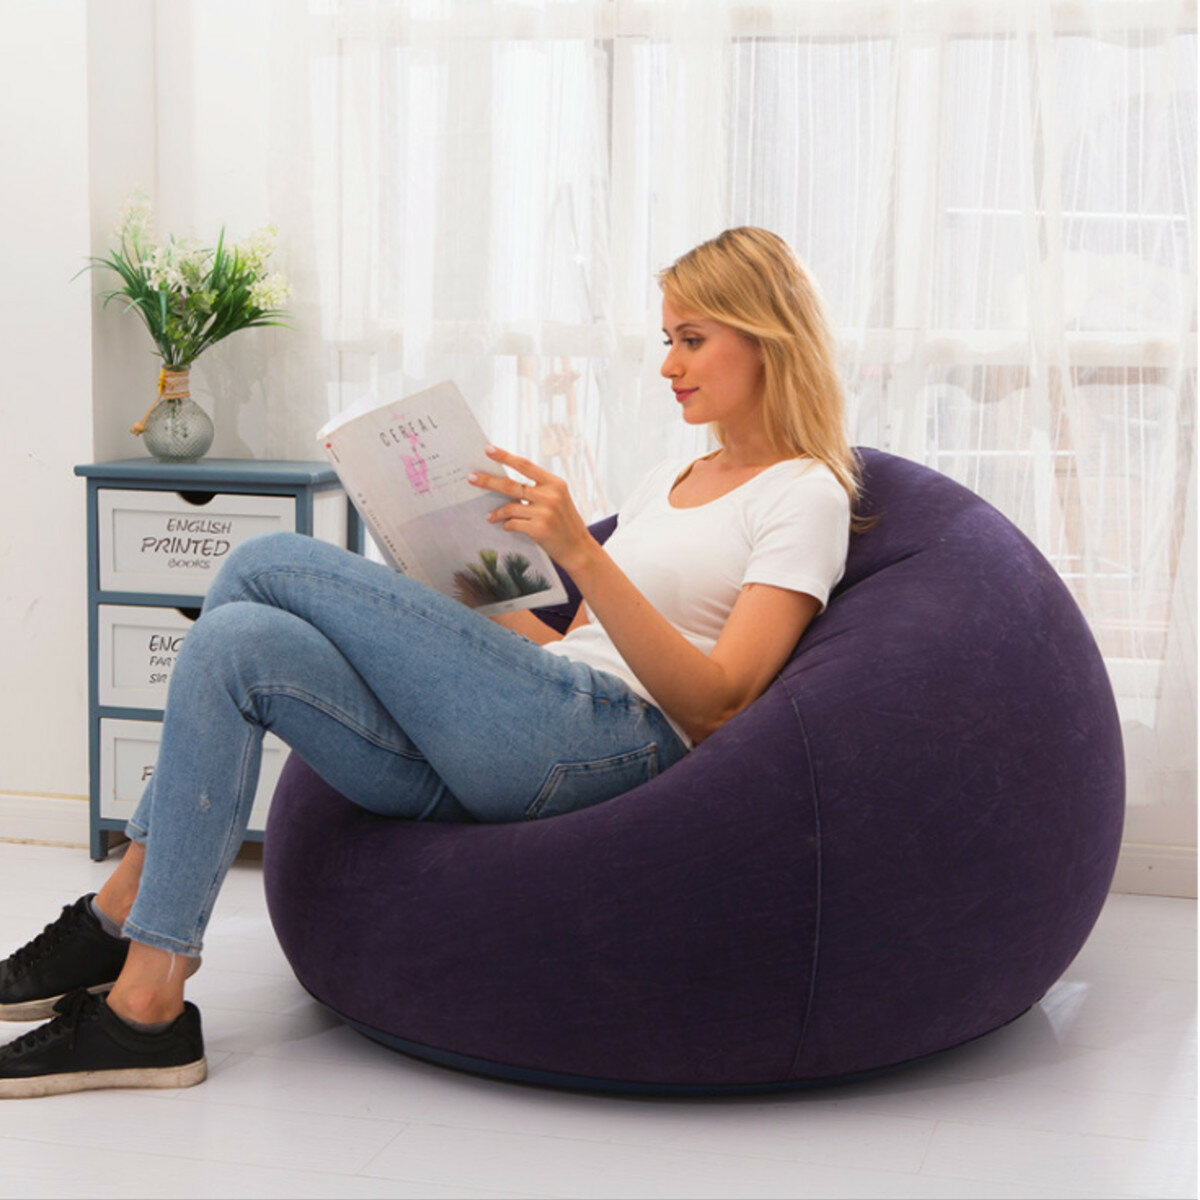 110x85cm Large Inflatable Chair Bean Bag PVC Indoor/Outdoor Garden Furniture Lounge Adult Lazy Sofa No Filler Folding Be